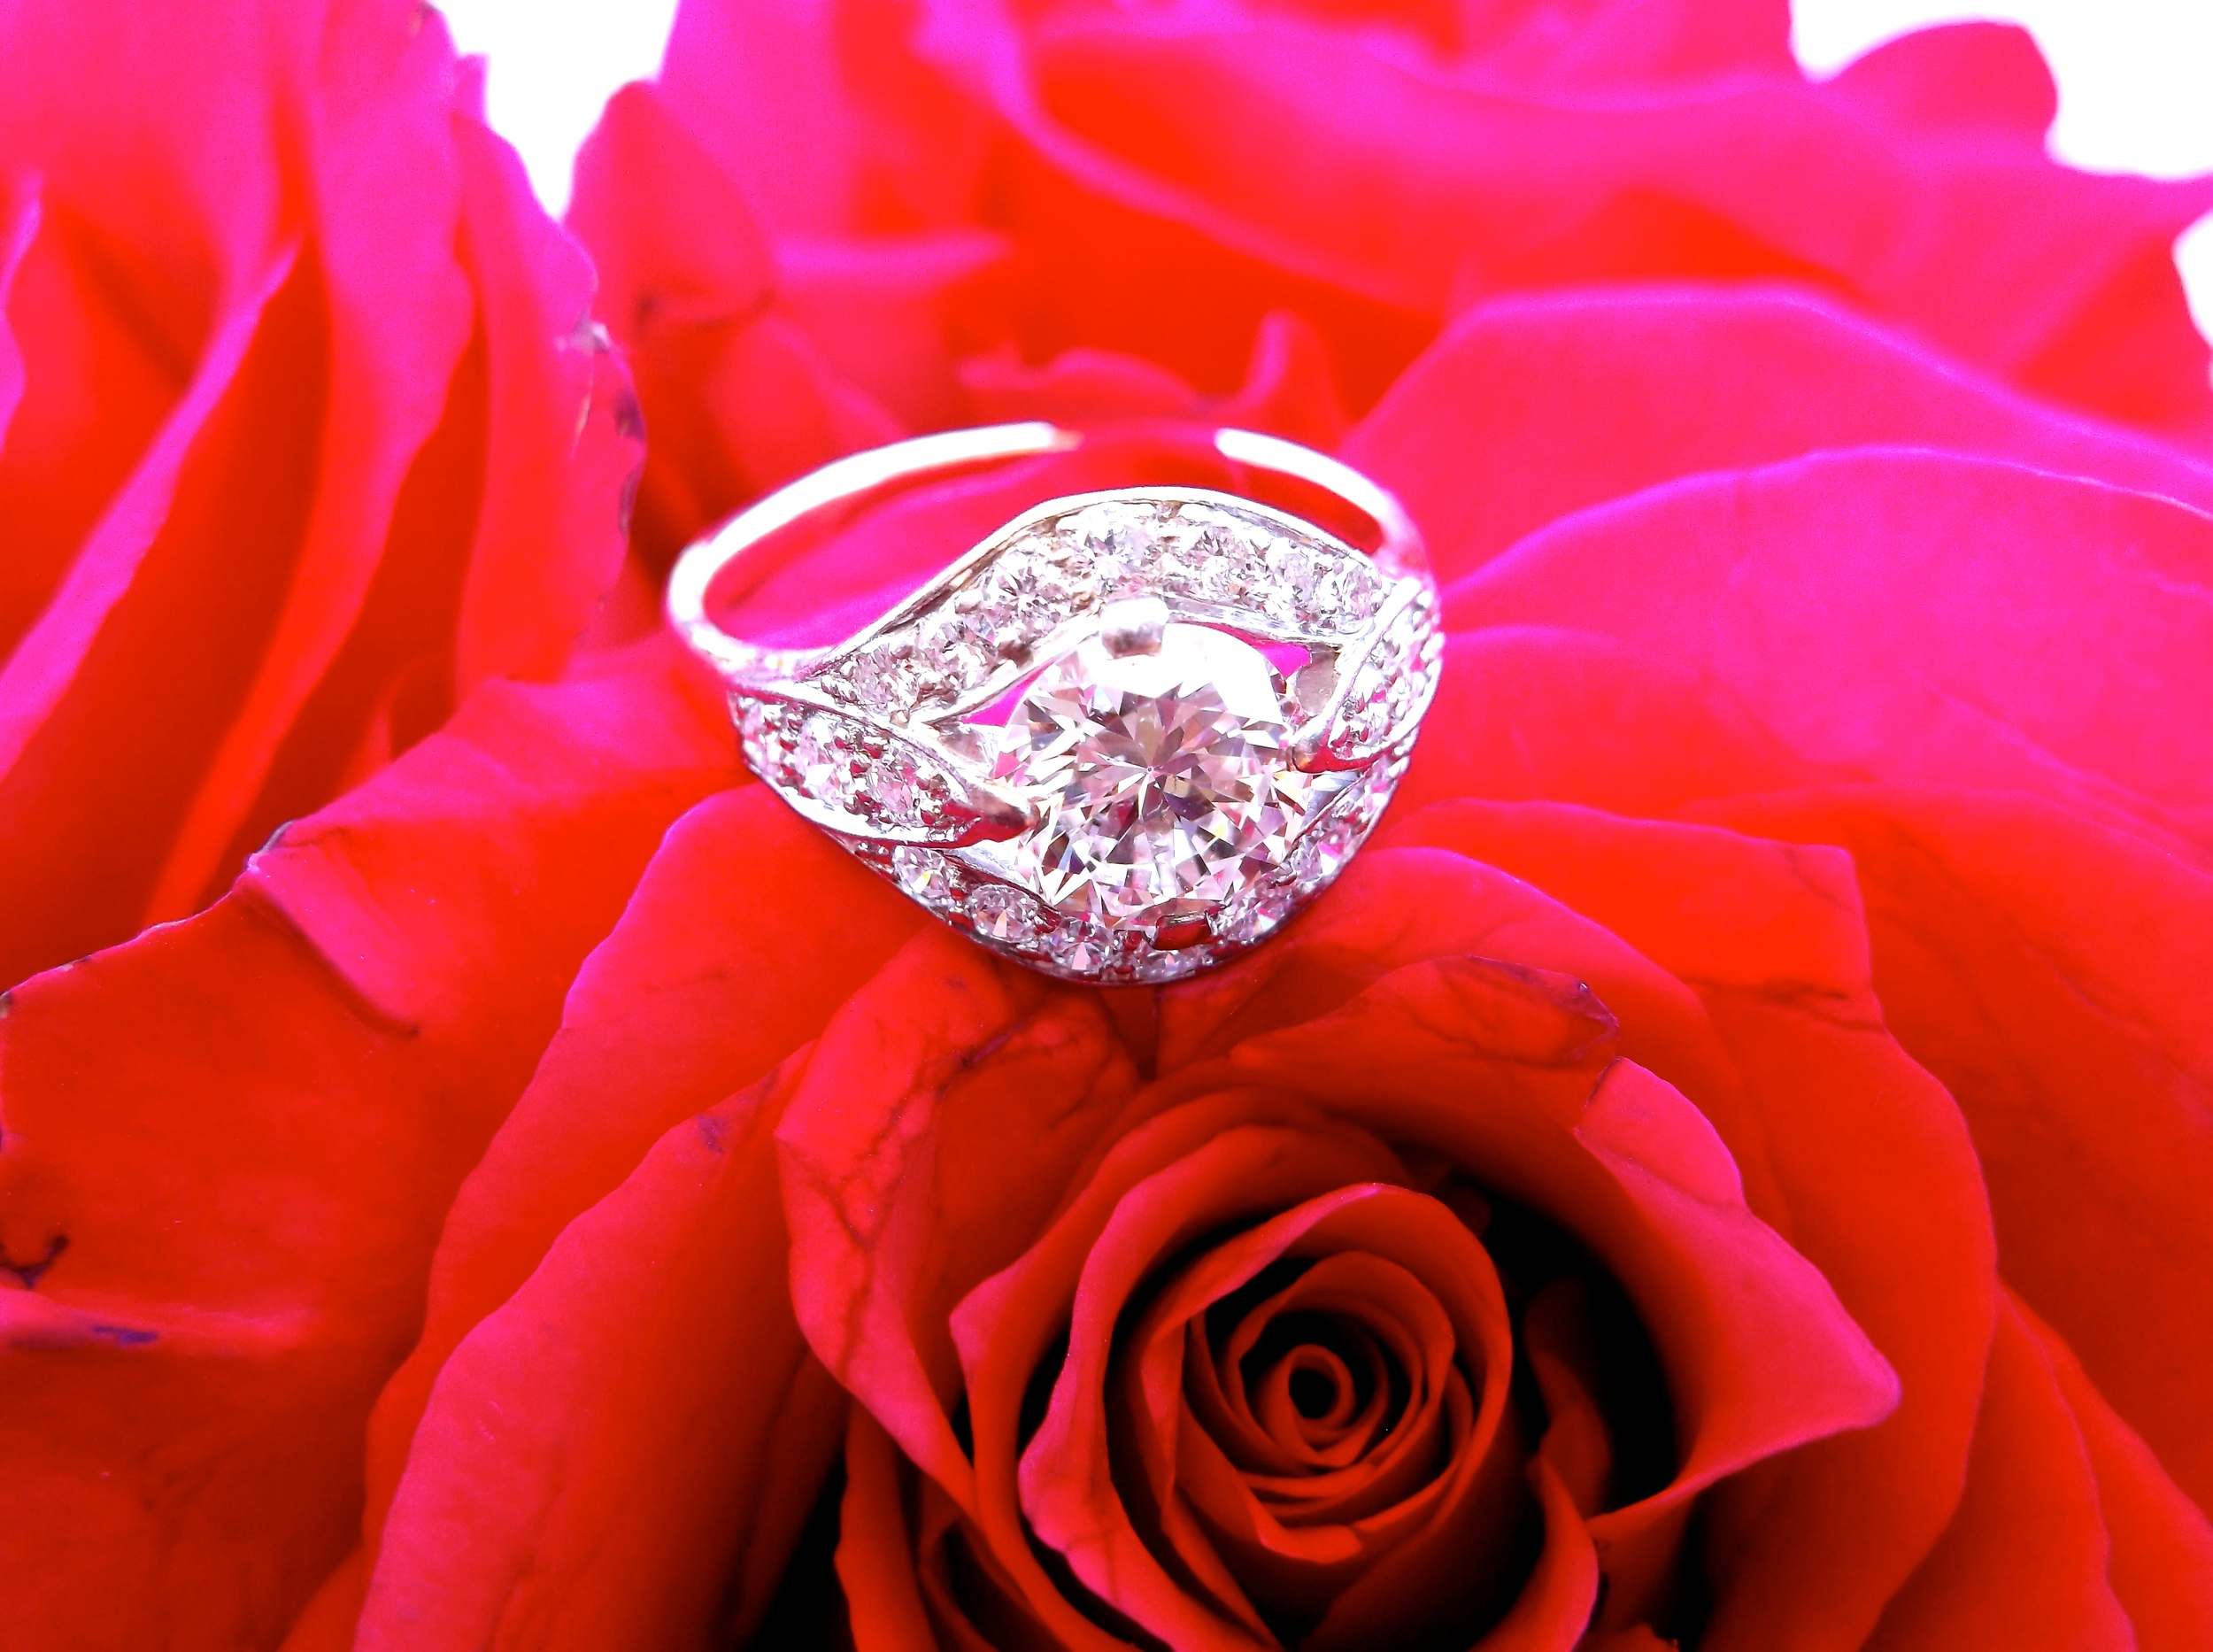 SOLD - Beautiful 1.25 carat diamond set in a yellow gold and white gold diamond detail mounting.